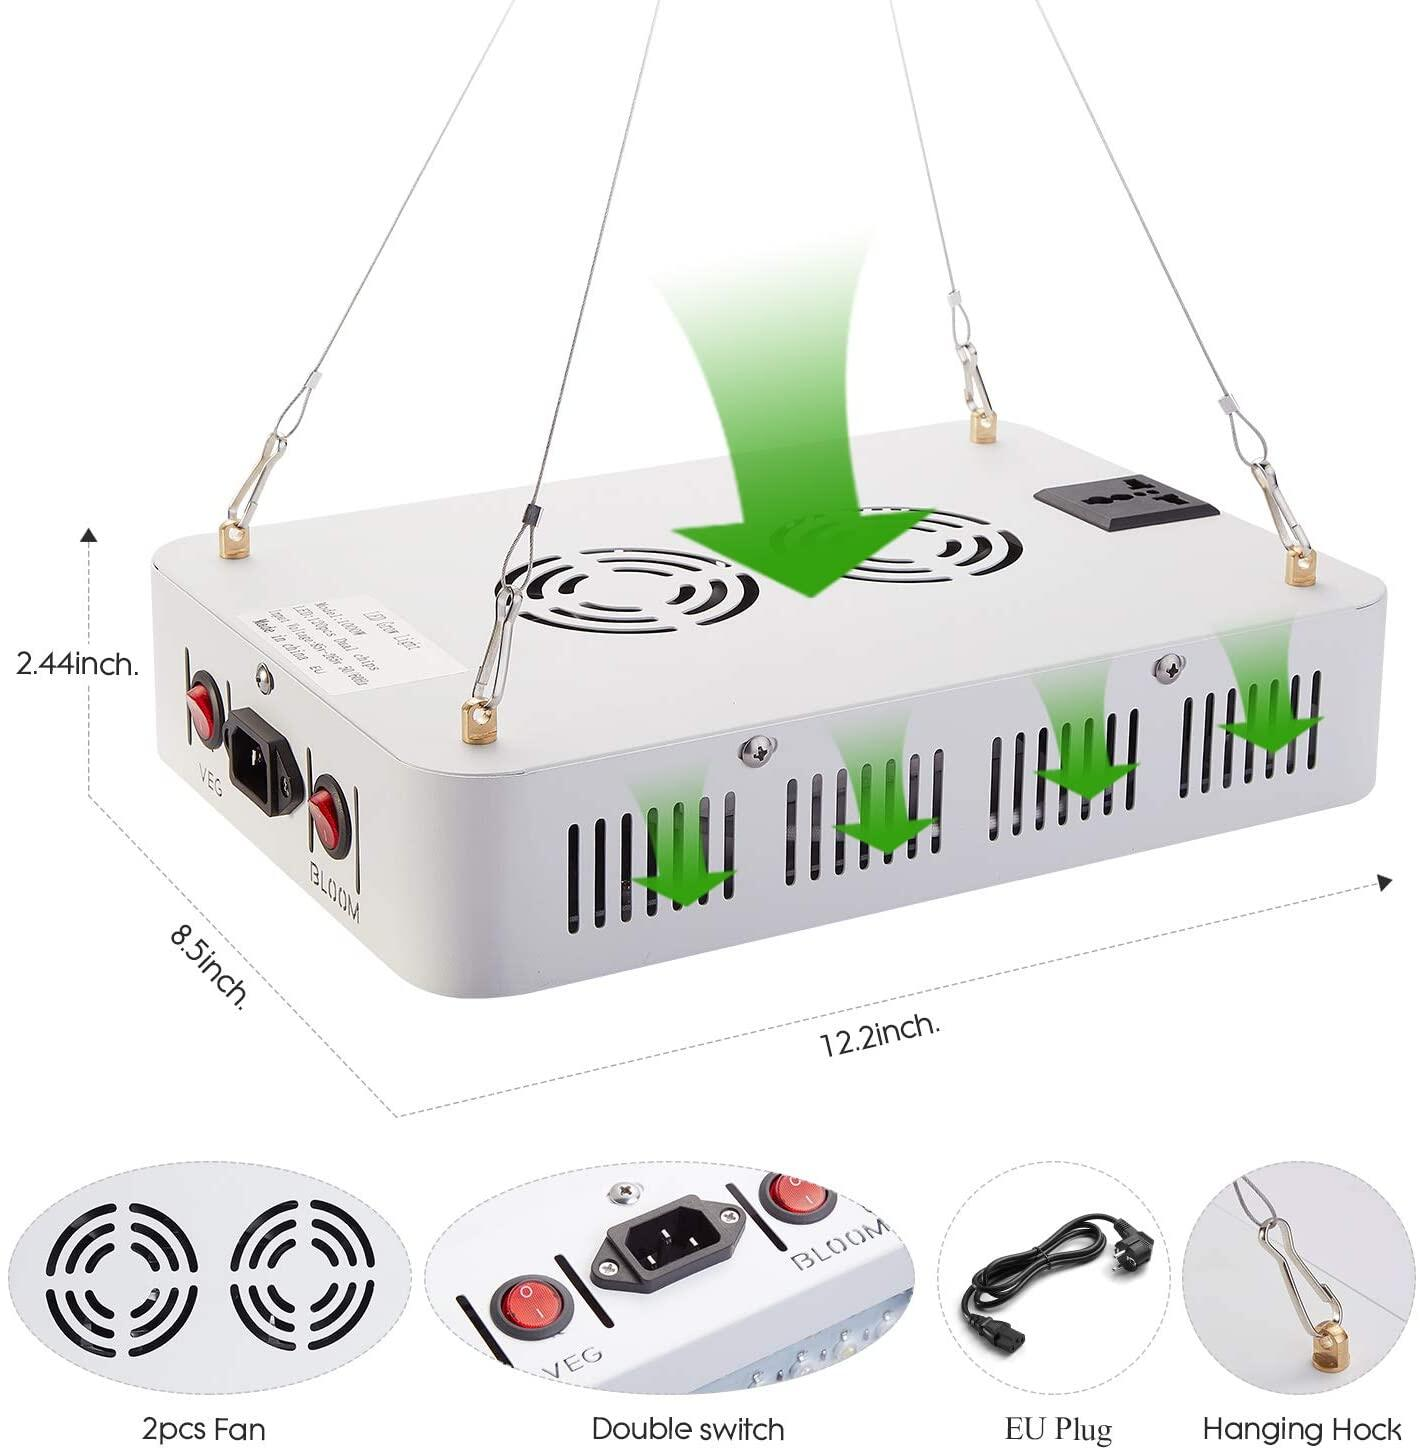 JS LED Grow Light, 600Watt Double Chips Full Spectrum Plant Lamp with Bloom and Veg Light for Indoor Grow Box Greenhouse Plant Vegetable Flower Growth …JS LED Grow Light, Full Spectrum Plant Grow Light at smart-join.comLED Grow Light